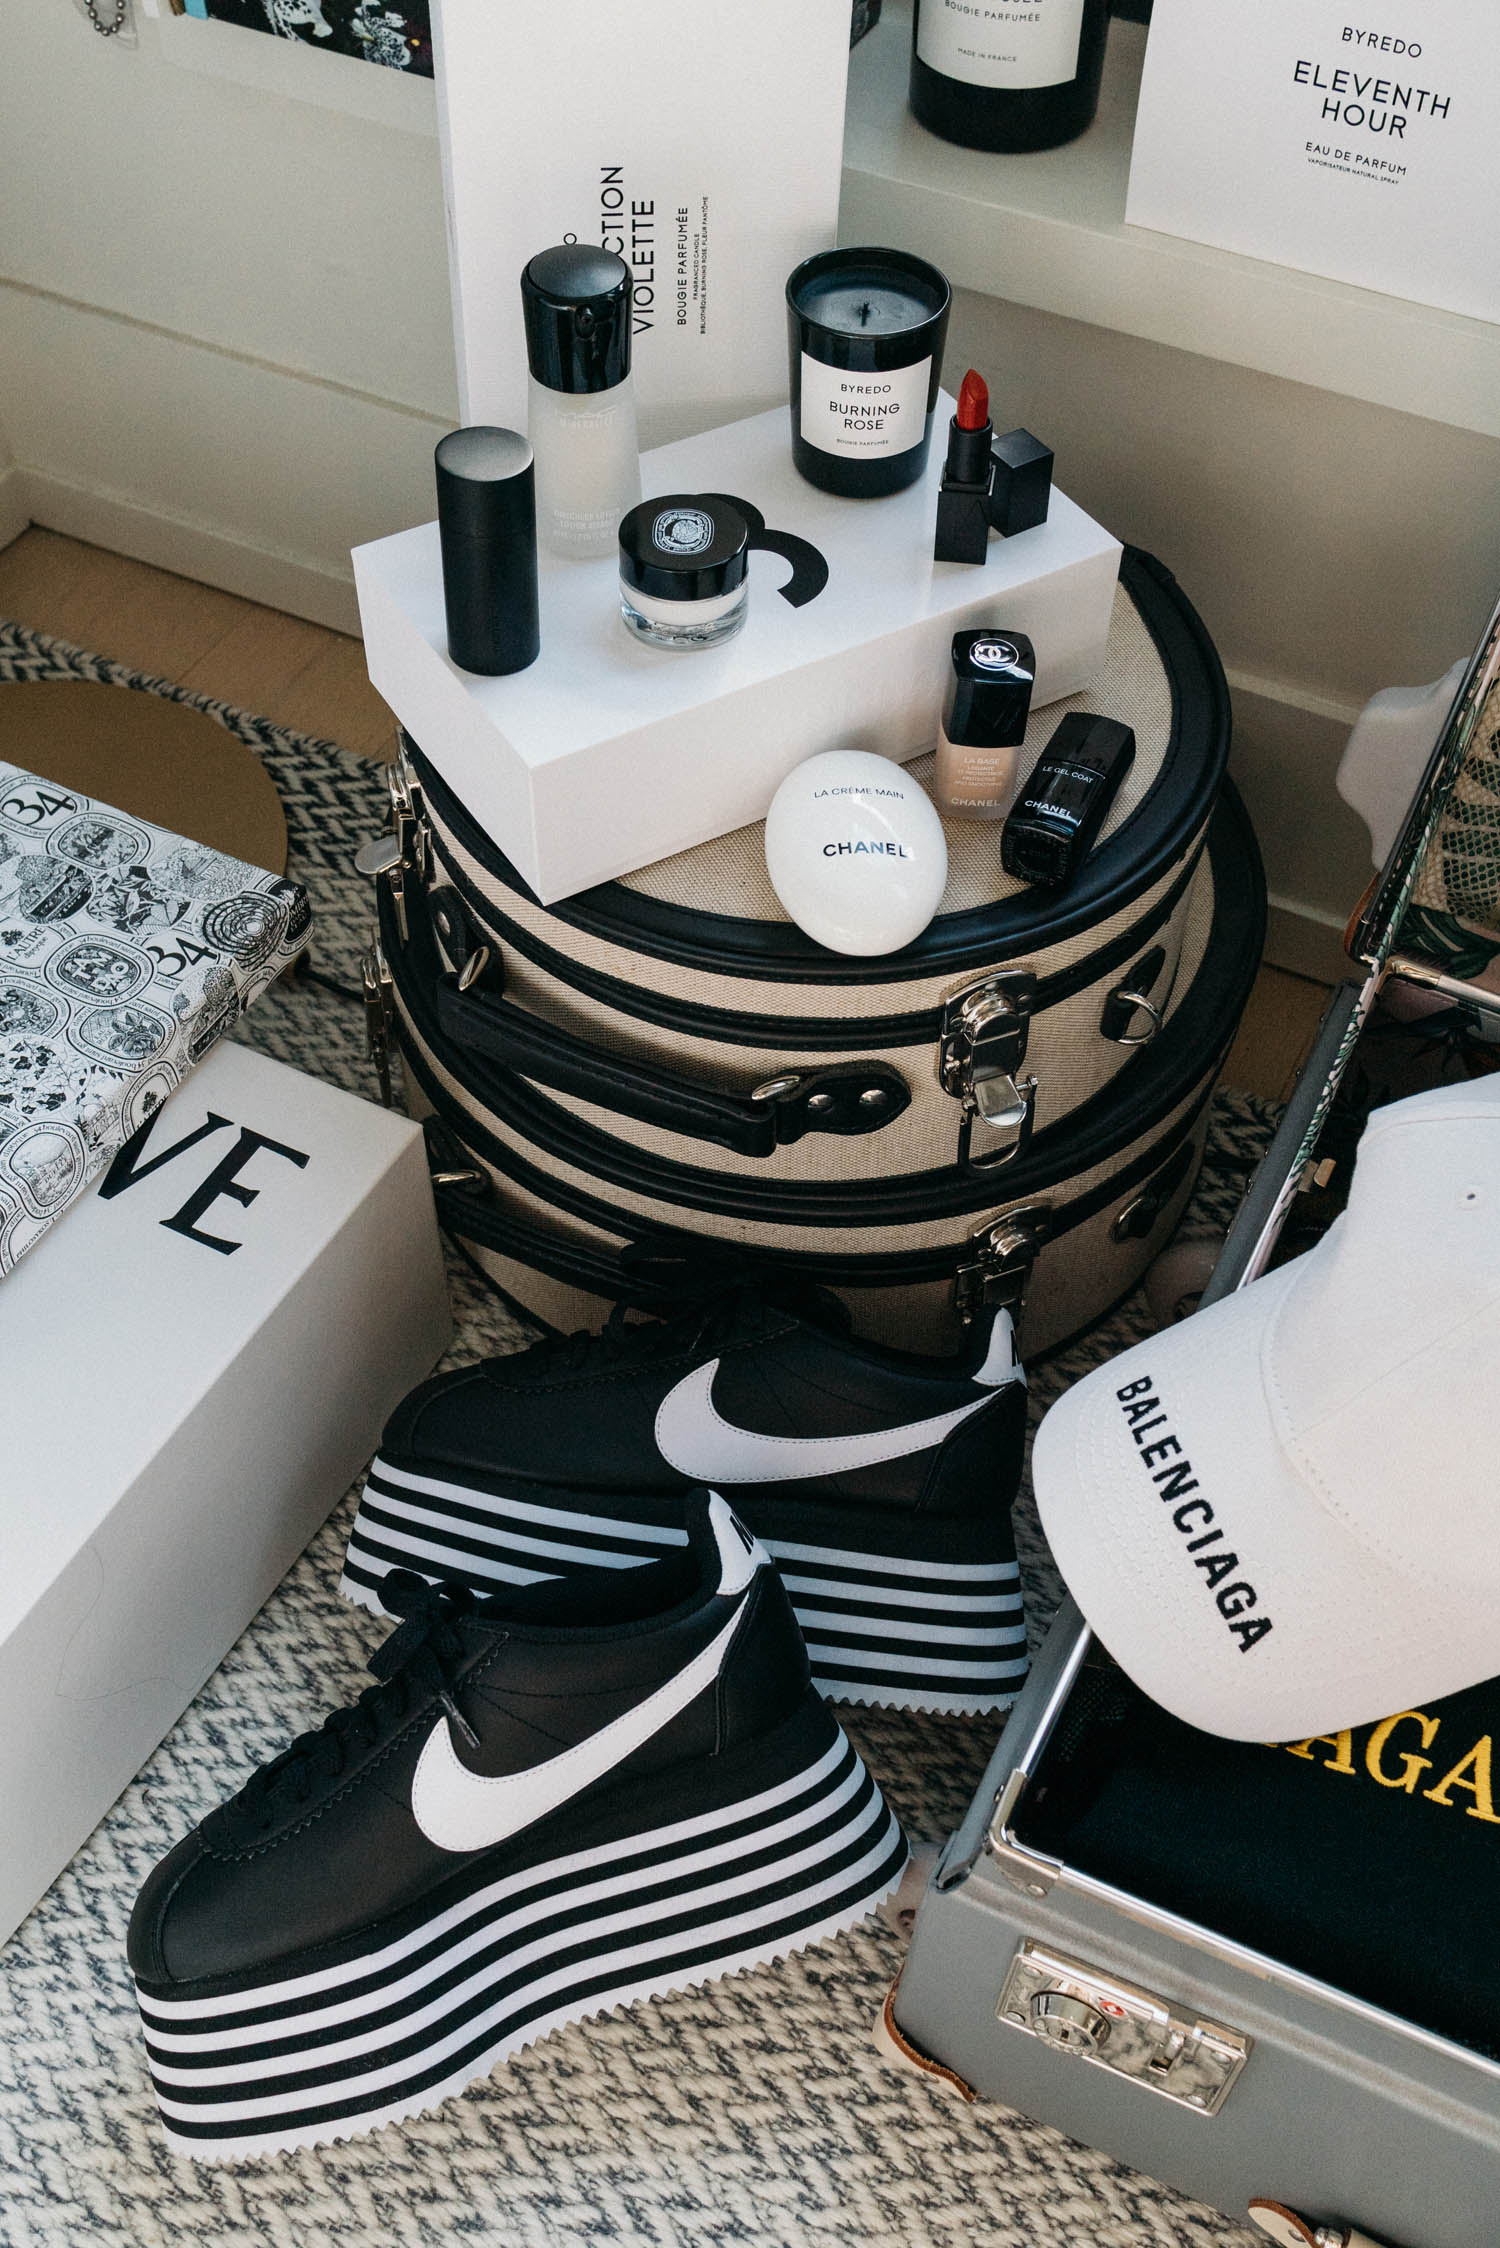 Comme des Garçons Sneakers ,  Balenciaga Hat ,  CHANEL Hand Cream ,  CHANEL Base Coat ,  CHANEL Top Coat ,  Byredo Candle ,  NARS Lipstick ,  Diptyque Cream ,  MAC Cosmetics Lotion ,  Gucci Westman Highlighter